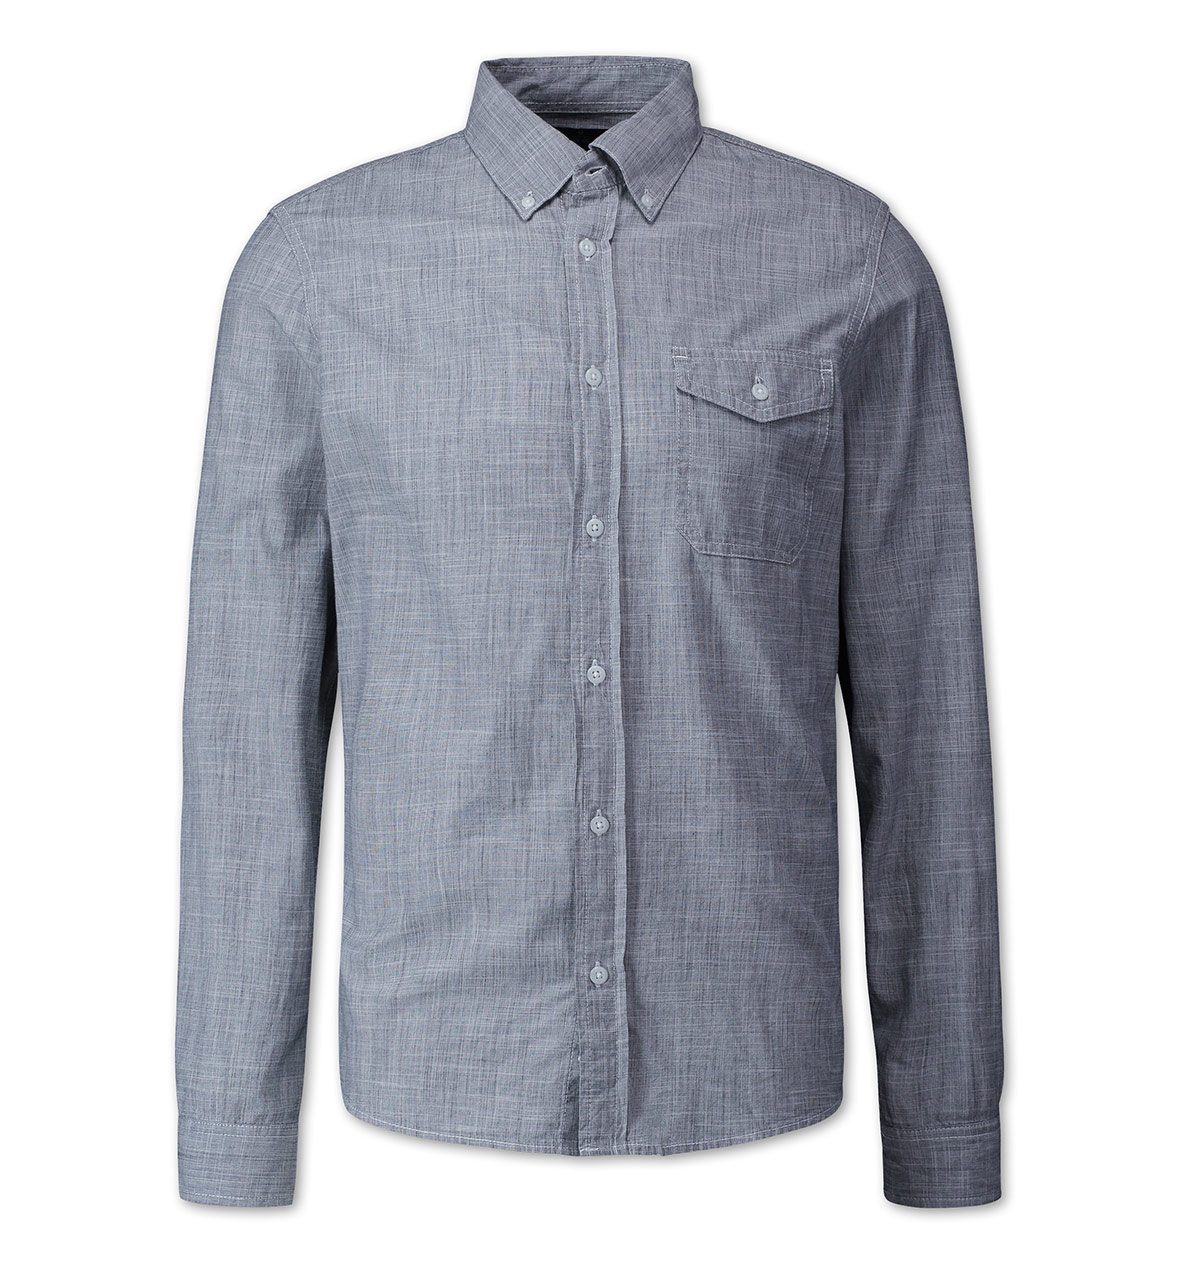 Technically chambray slub... but you get the idea.